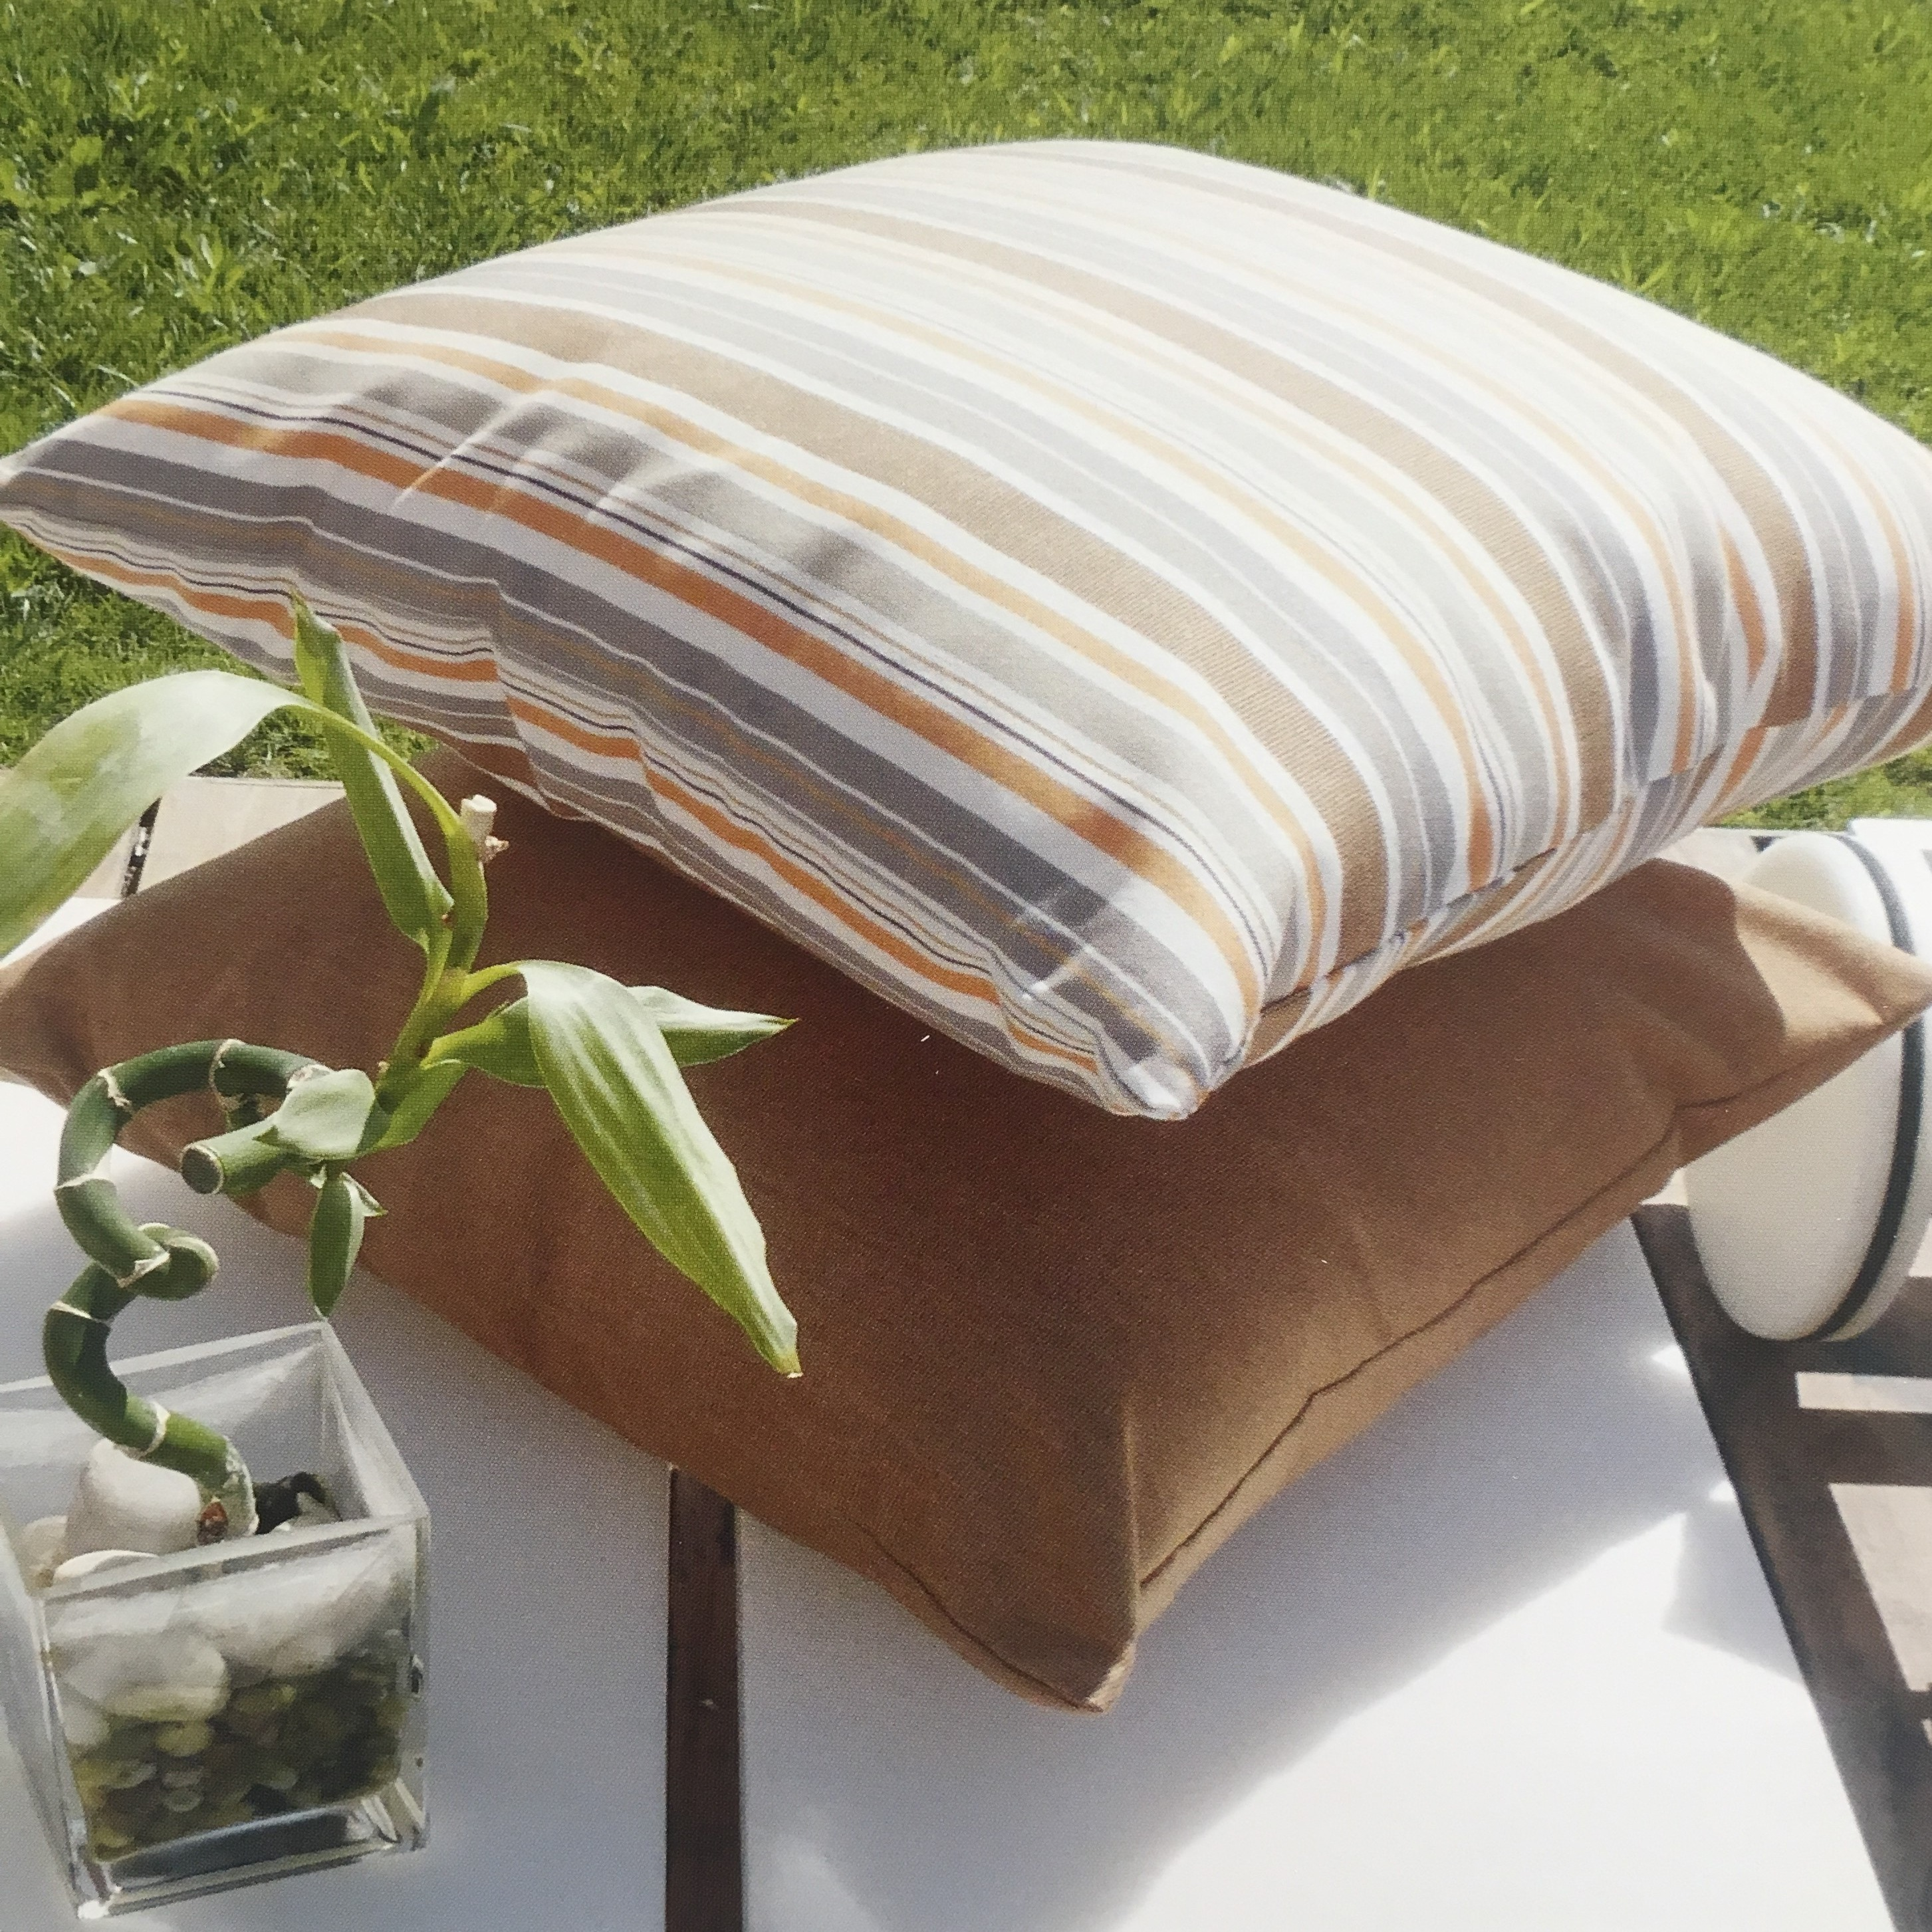 outdoor  sofa  Fabric 100 Solution Dyed Acrylic stripe Waterproof Beach Gsm Style  patterned  Tent Feature Weight Material Yarn